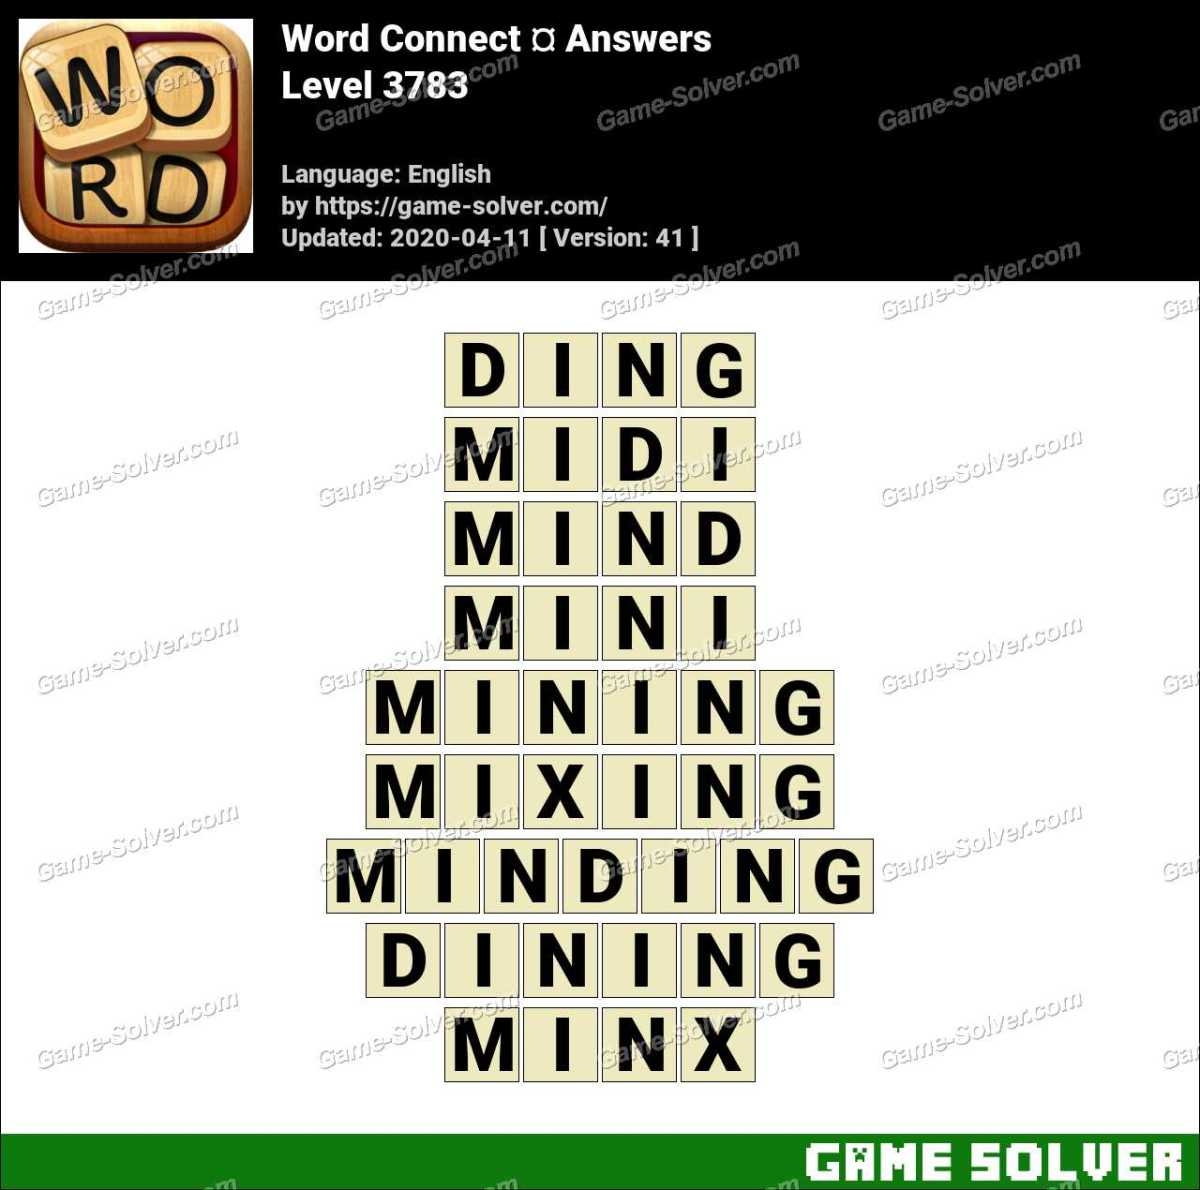 Word Connect Level 3783 Answers